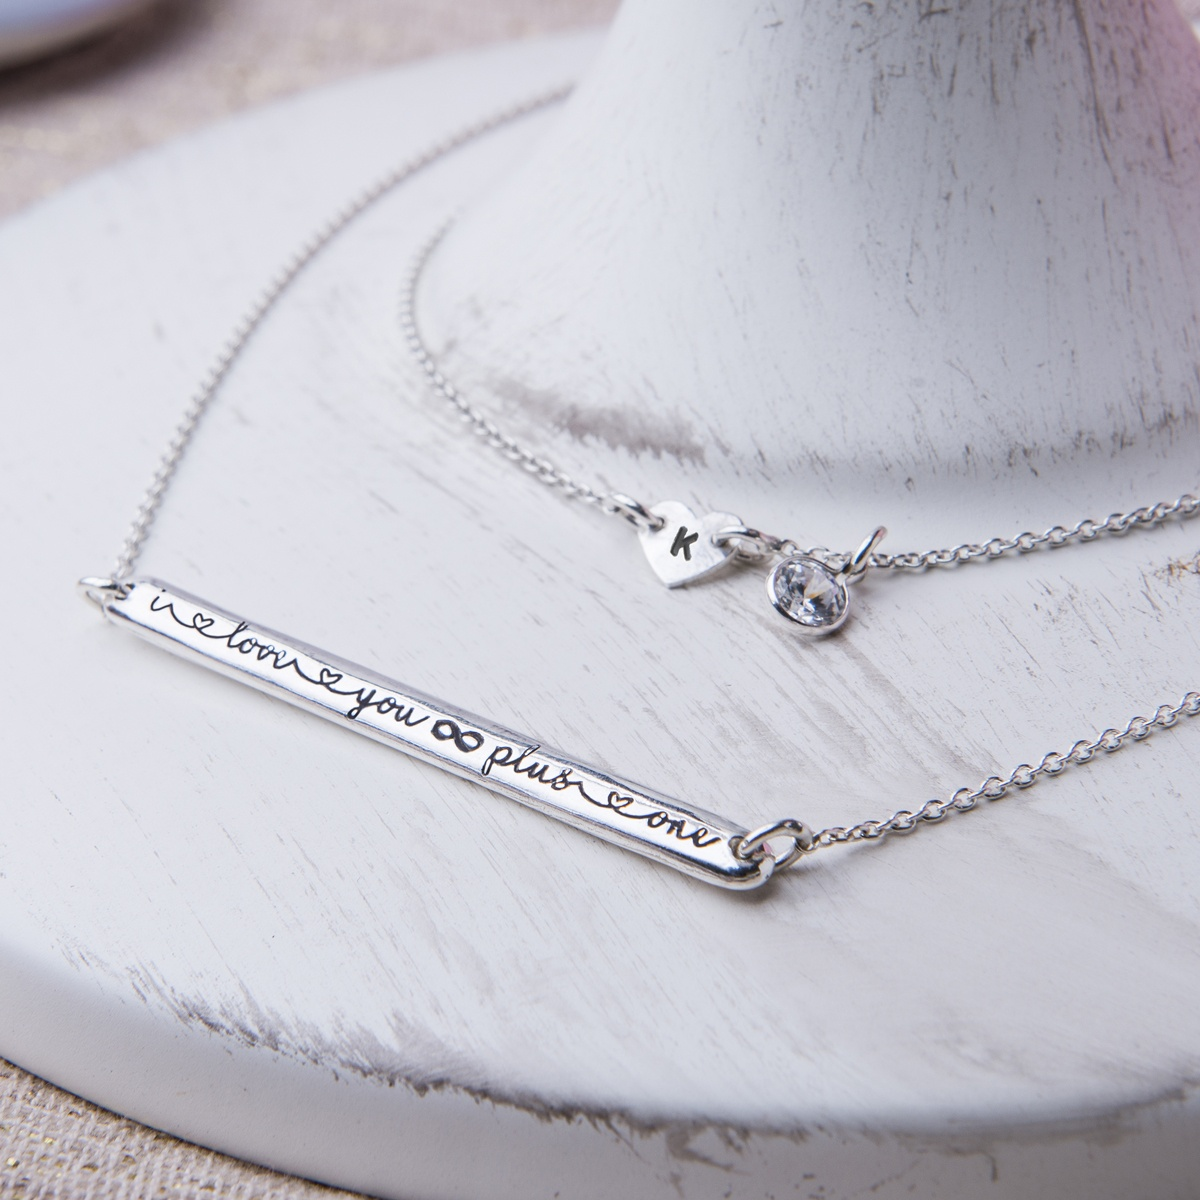 Love you infinity plus one necklace. perfect gift for a loved one, handmade especially for you.